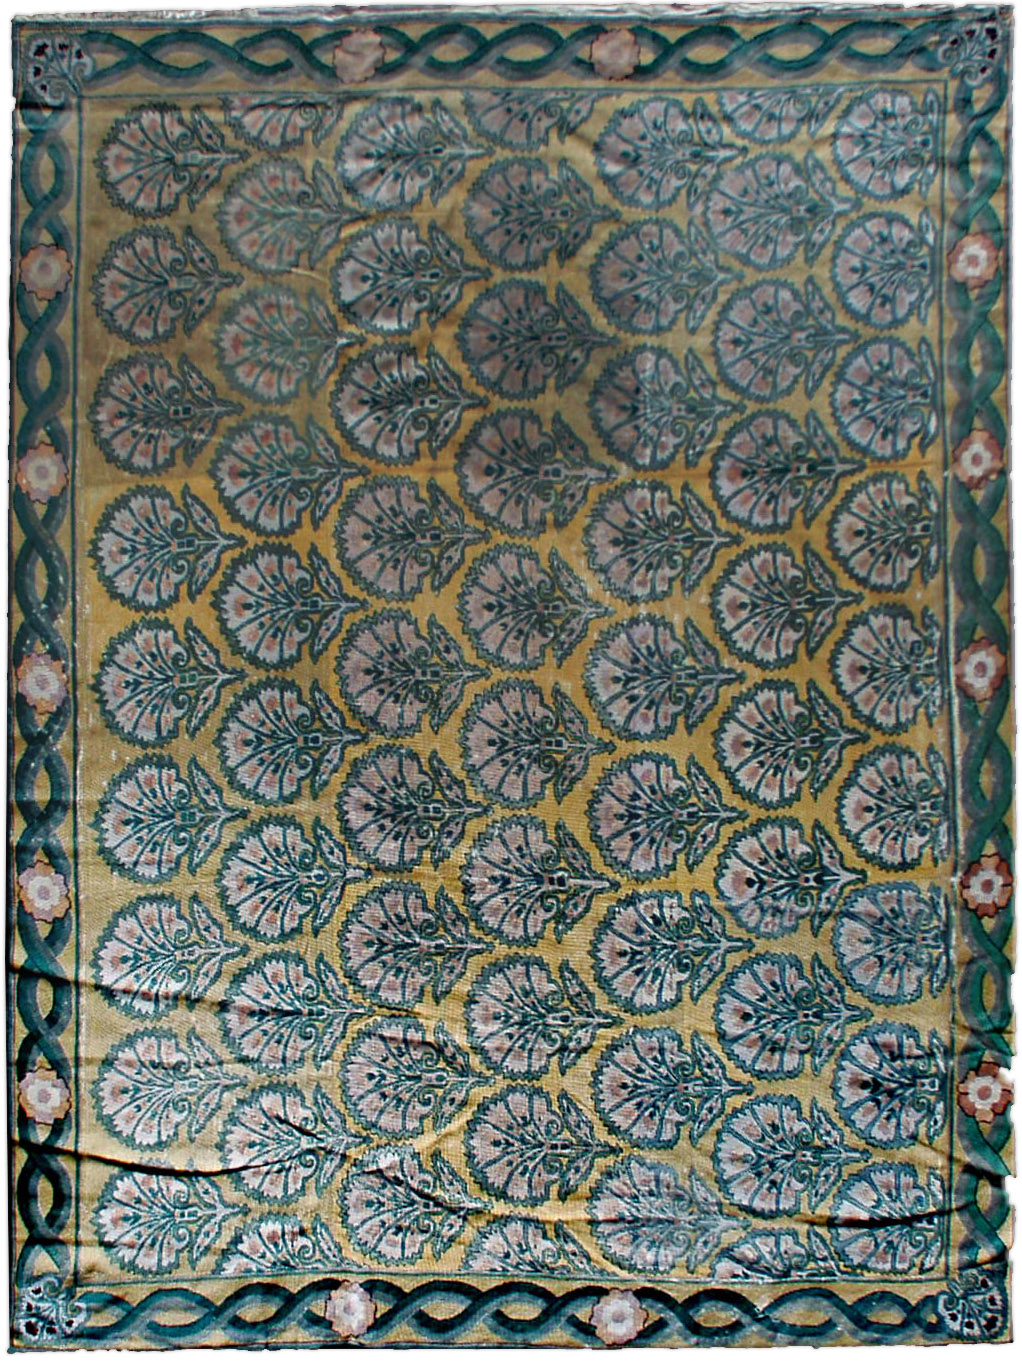 Antique needlepoint Carpet BB0638